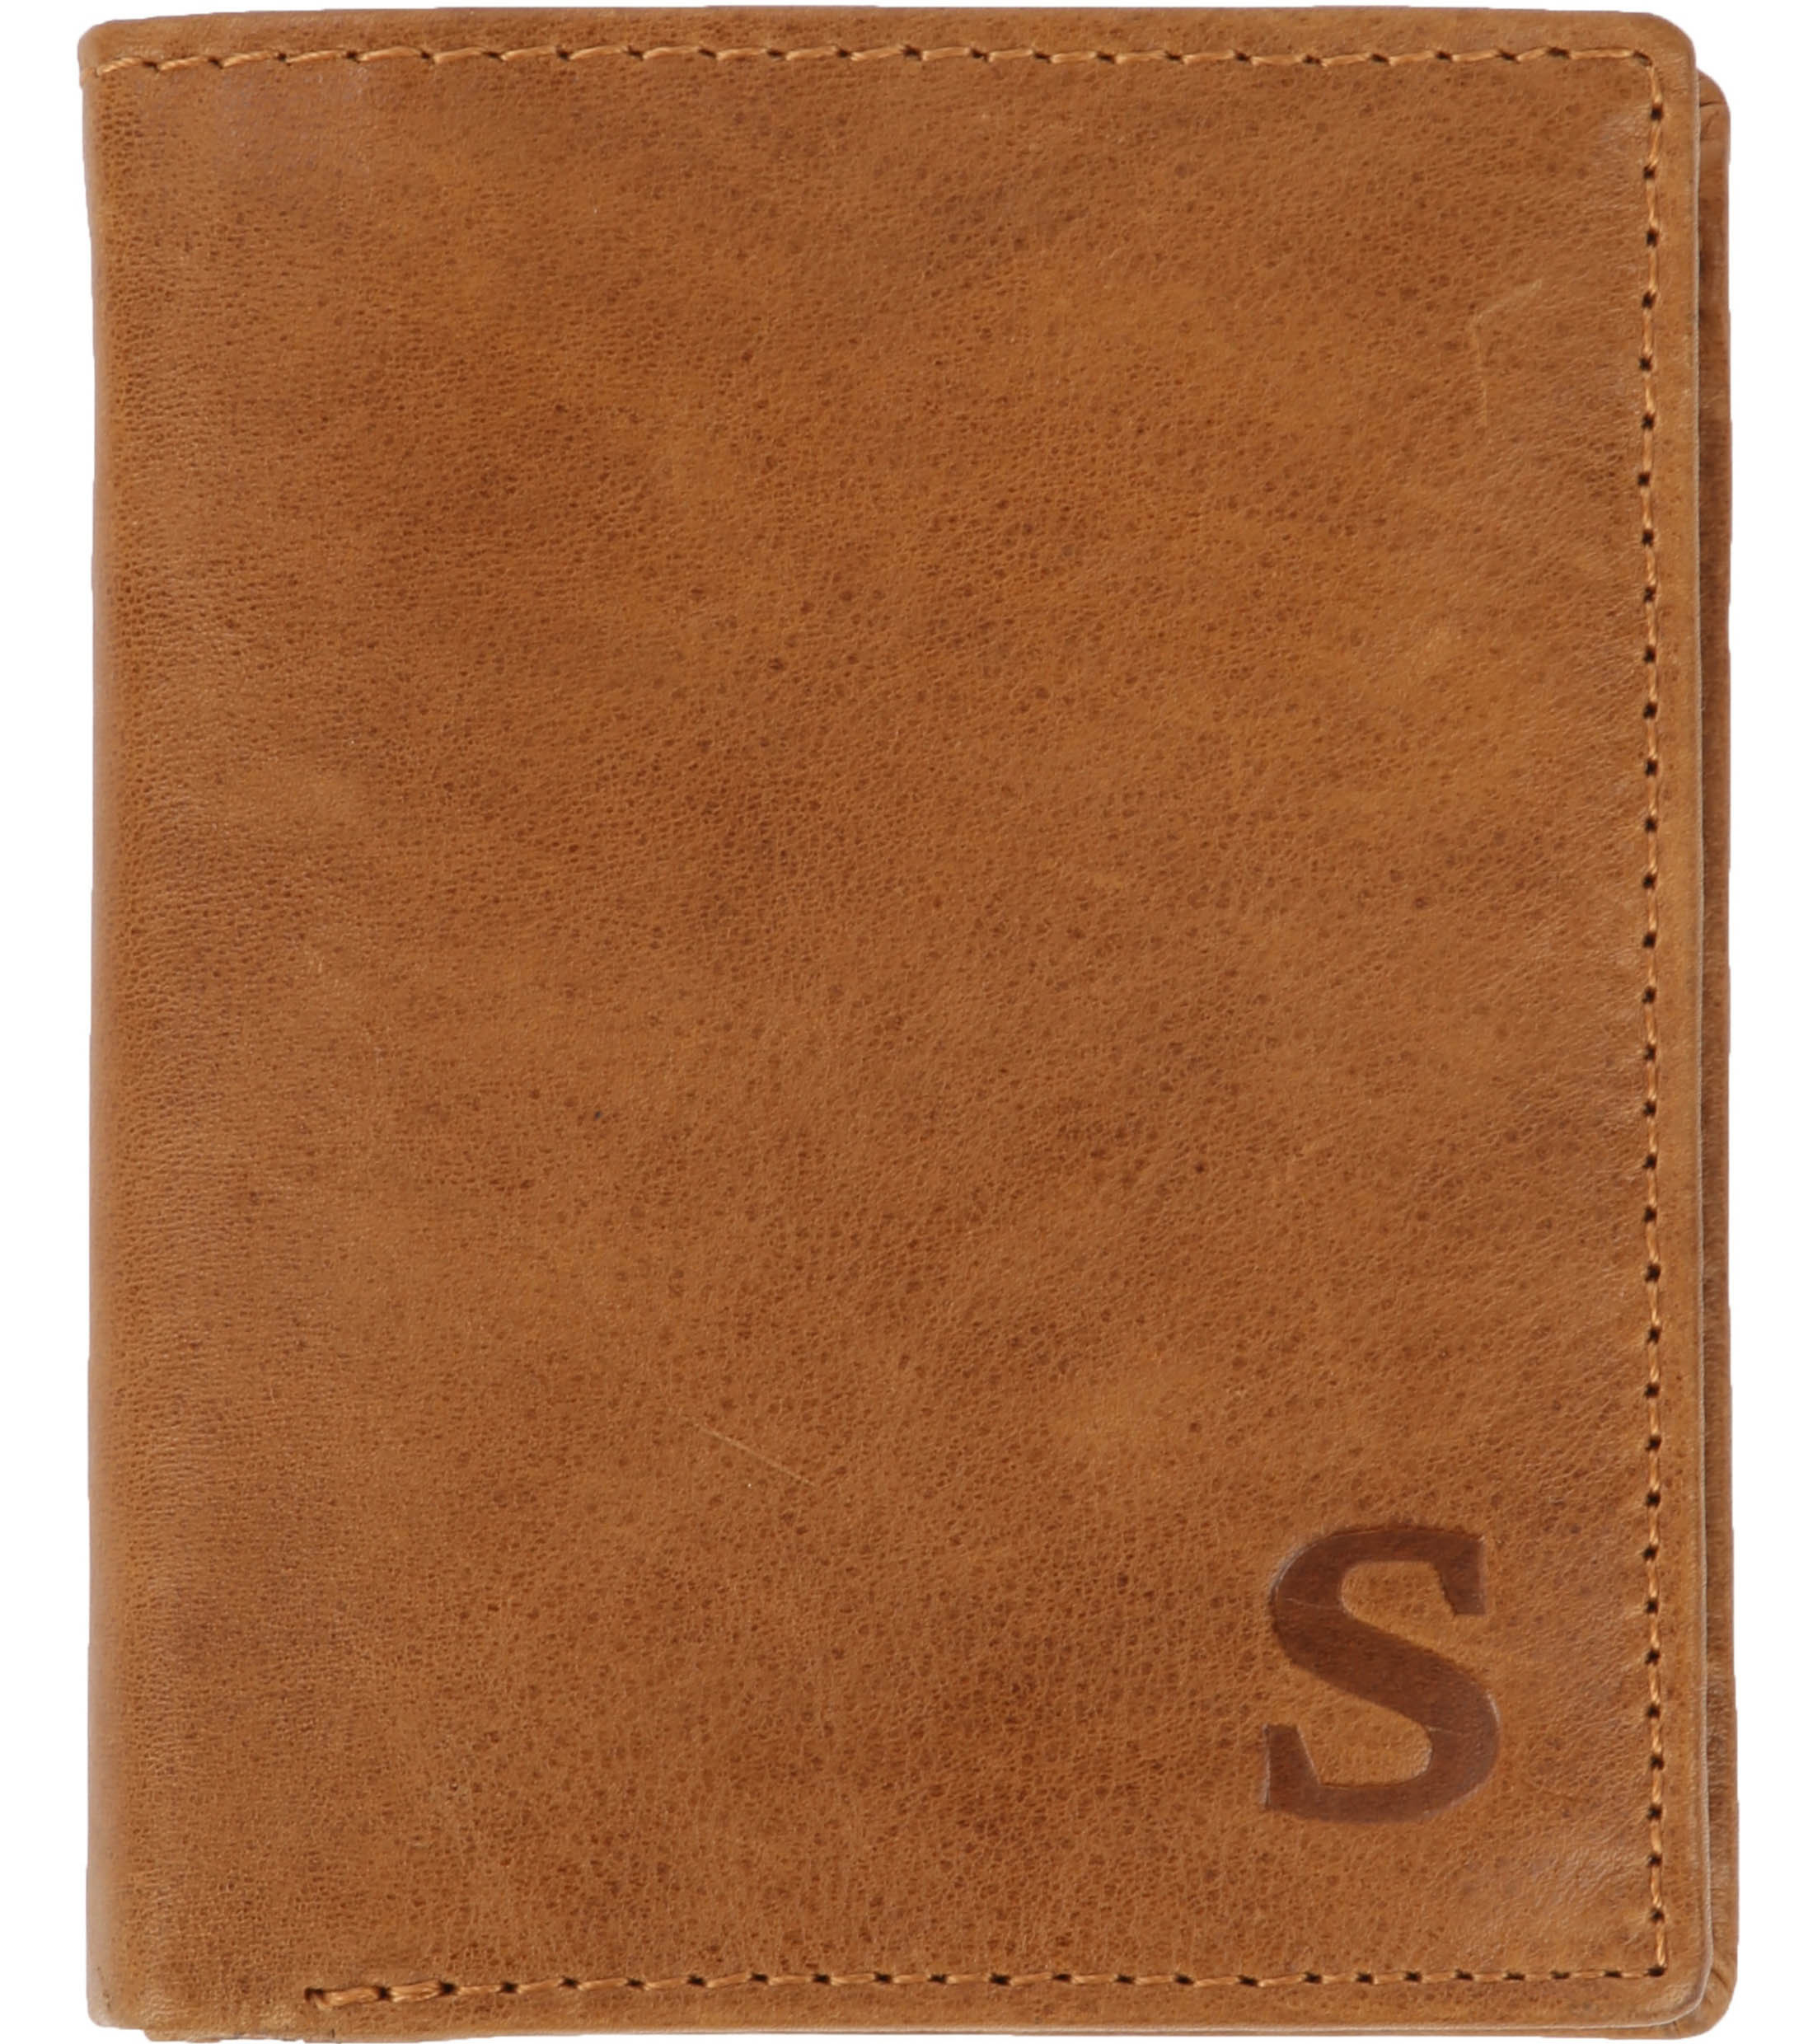 Suitable Wallet Nikkei Light Brown Leather - Skim Proof foto 0